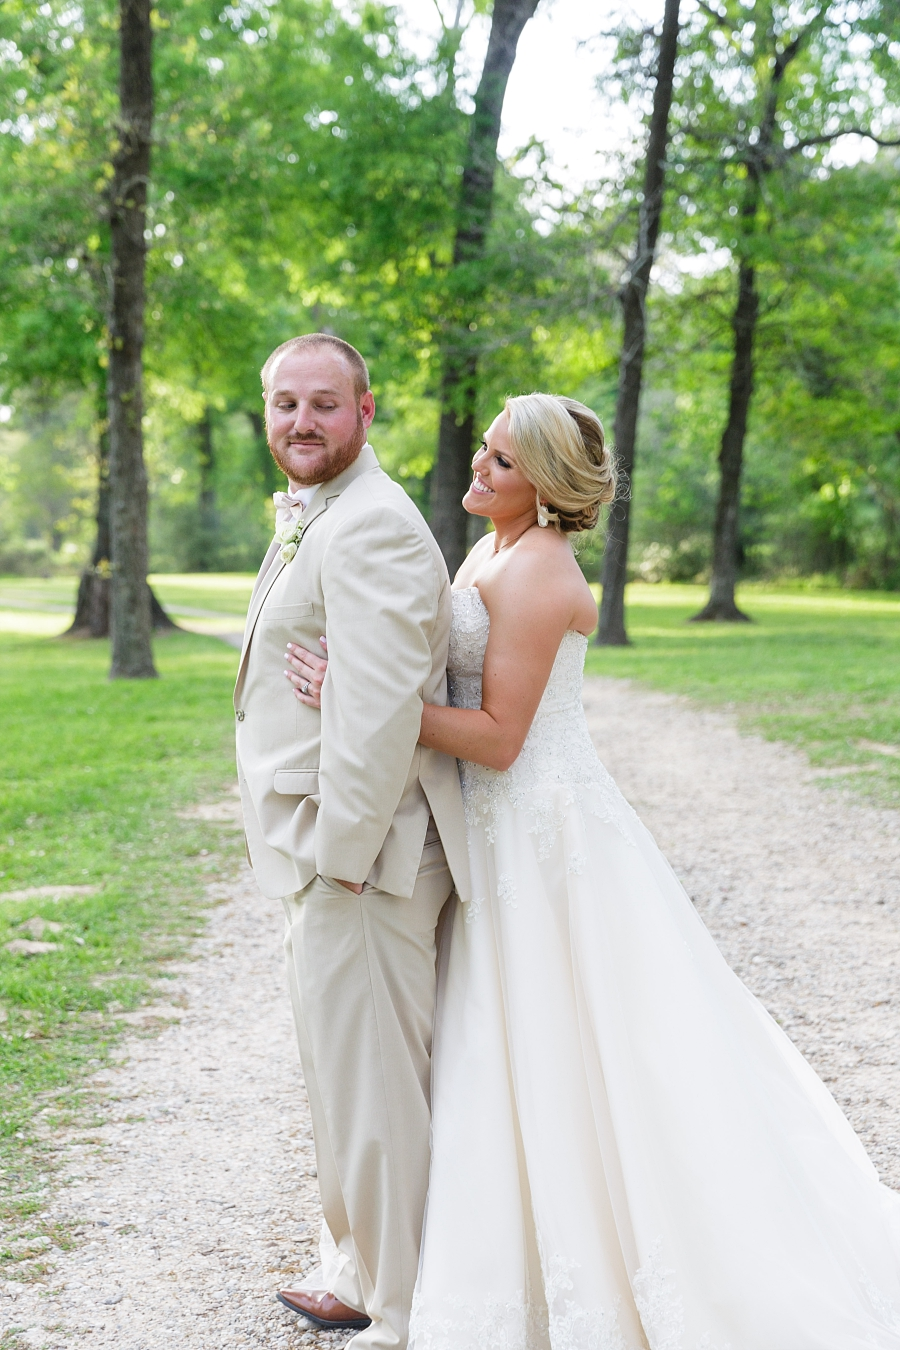 Stacy-Anderson-Photography-Balmorhea-Houston-Wedding-Photographer_0074.jpg